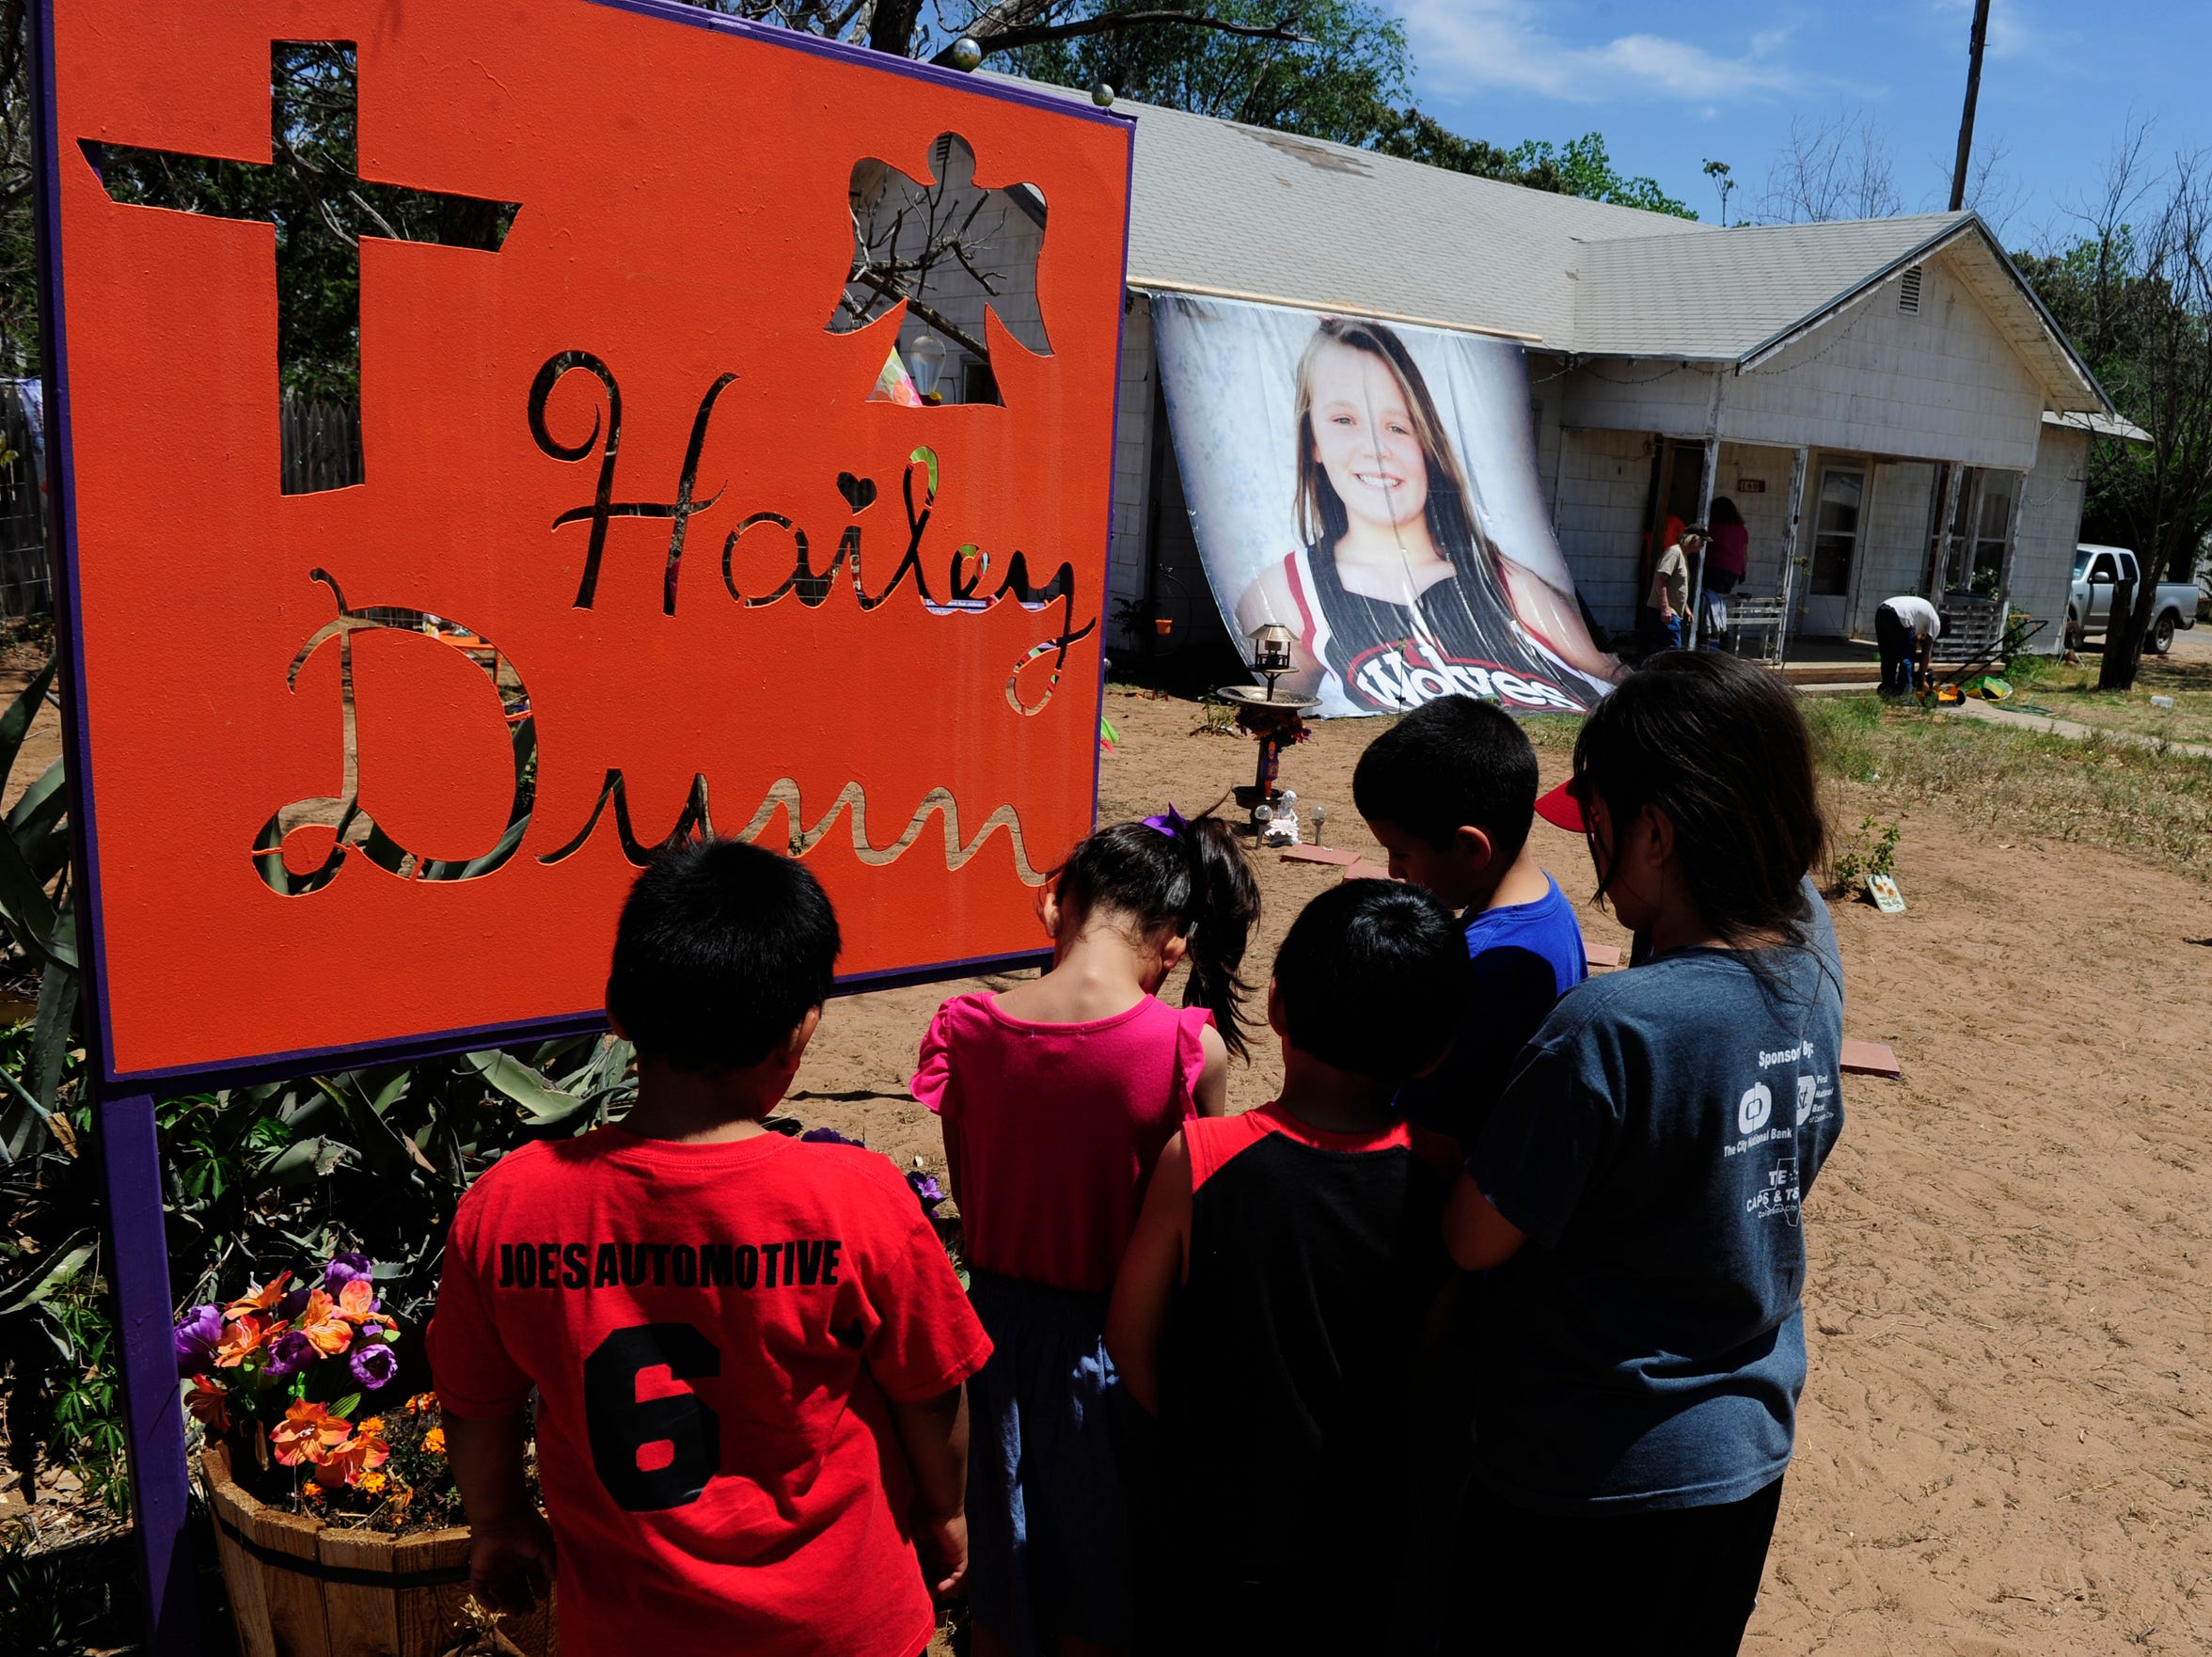 A group of Colorado City schoolchildren bow their heads in front of a memorial sign and flowers in the front yard of Hailey Dunn's former home.